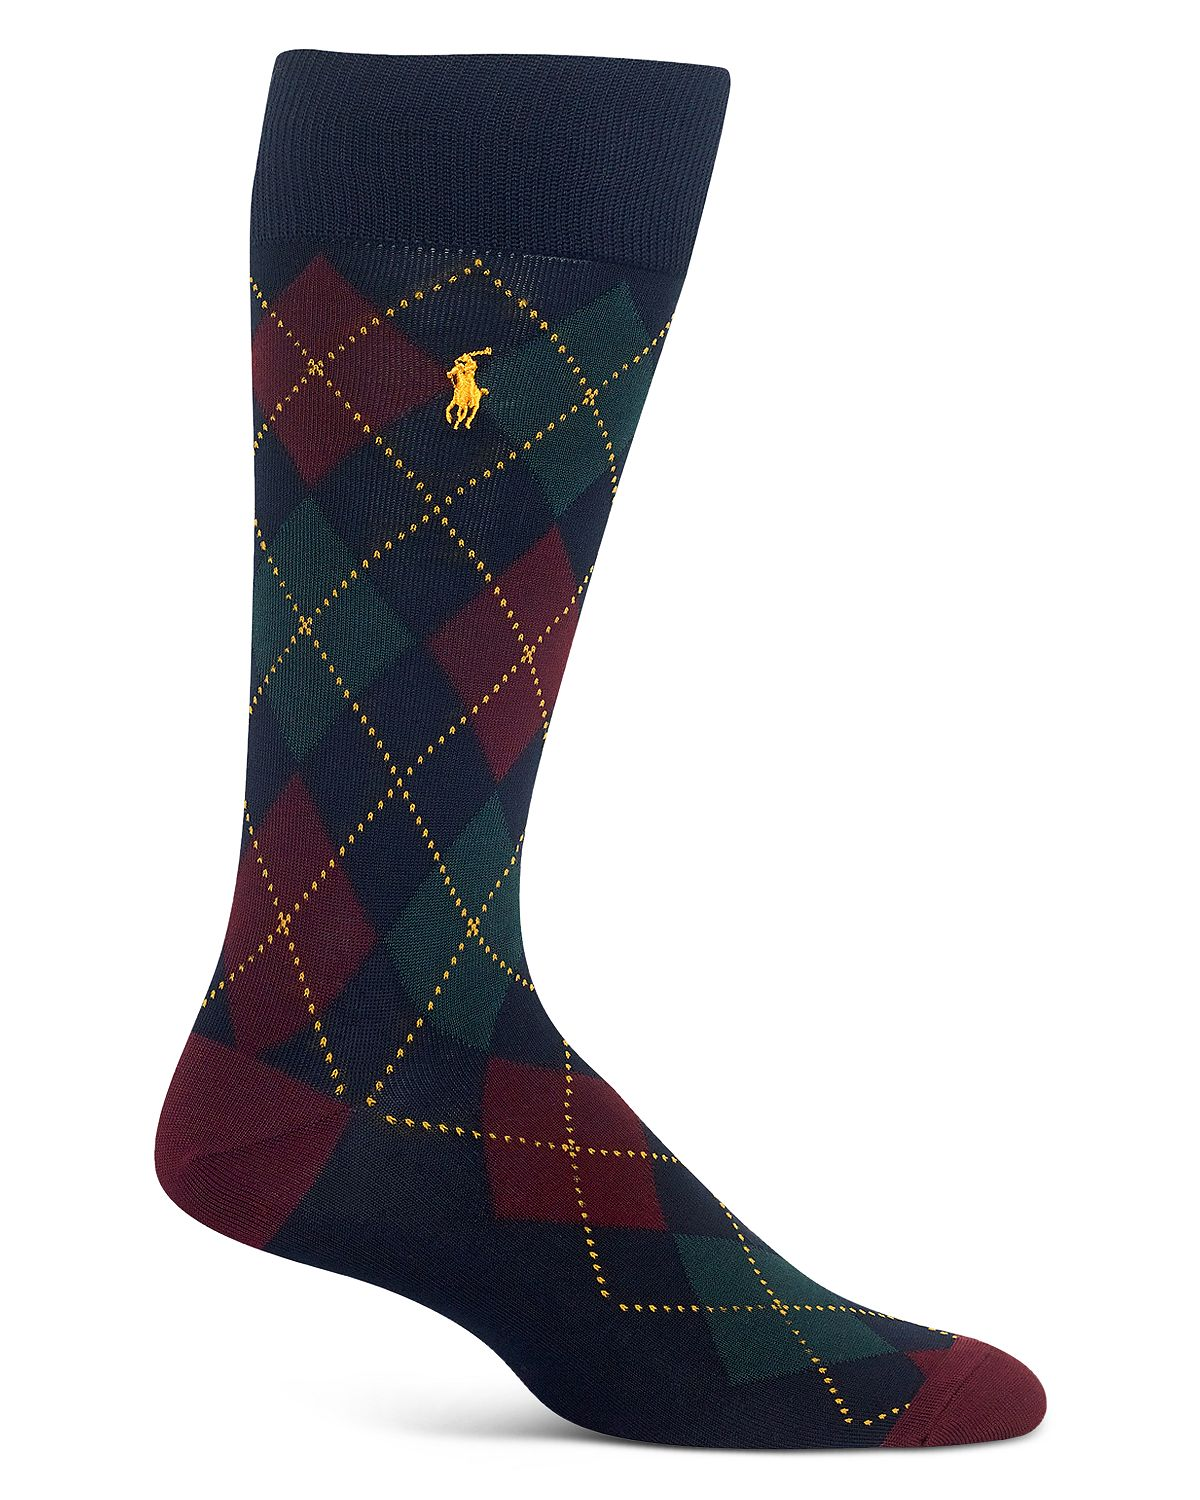 Polo Ralph Lauren Mercerized Argyle Socks Navy